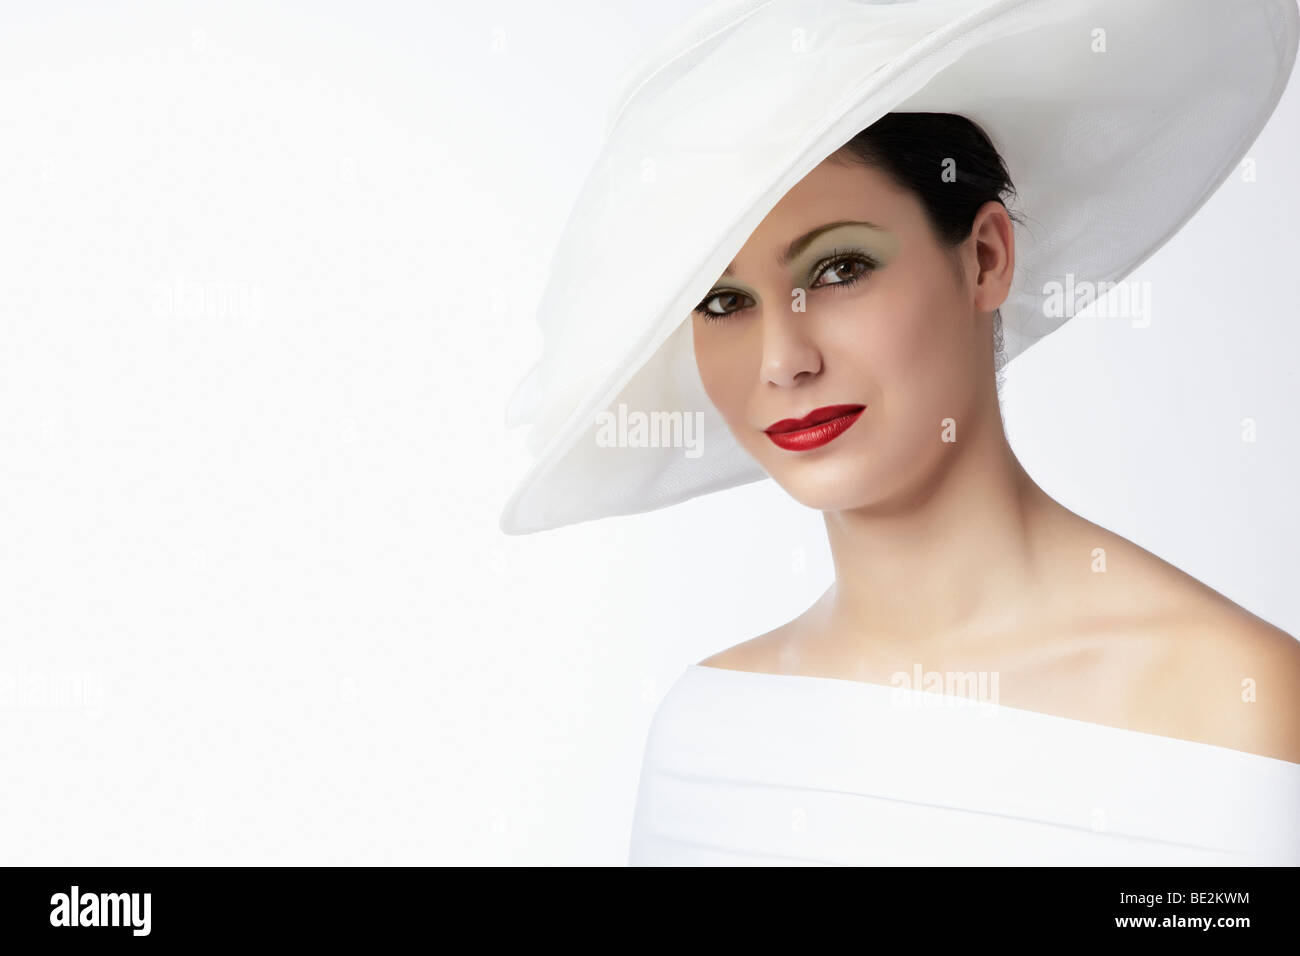 Portrait of a young woman wearing a white summer hat and white dress, looking directly towards the viewer - Stock Image